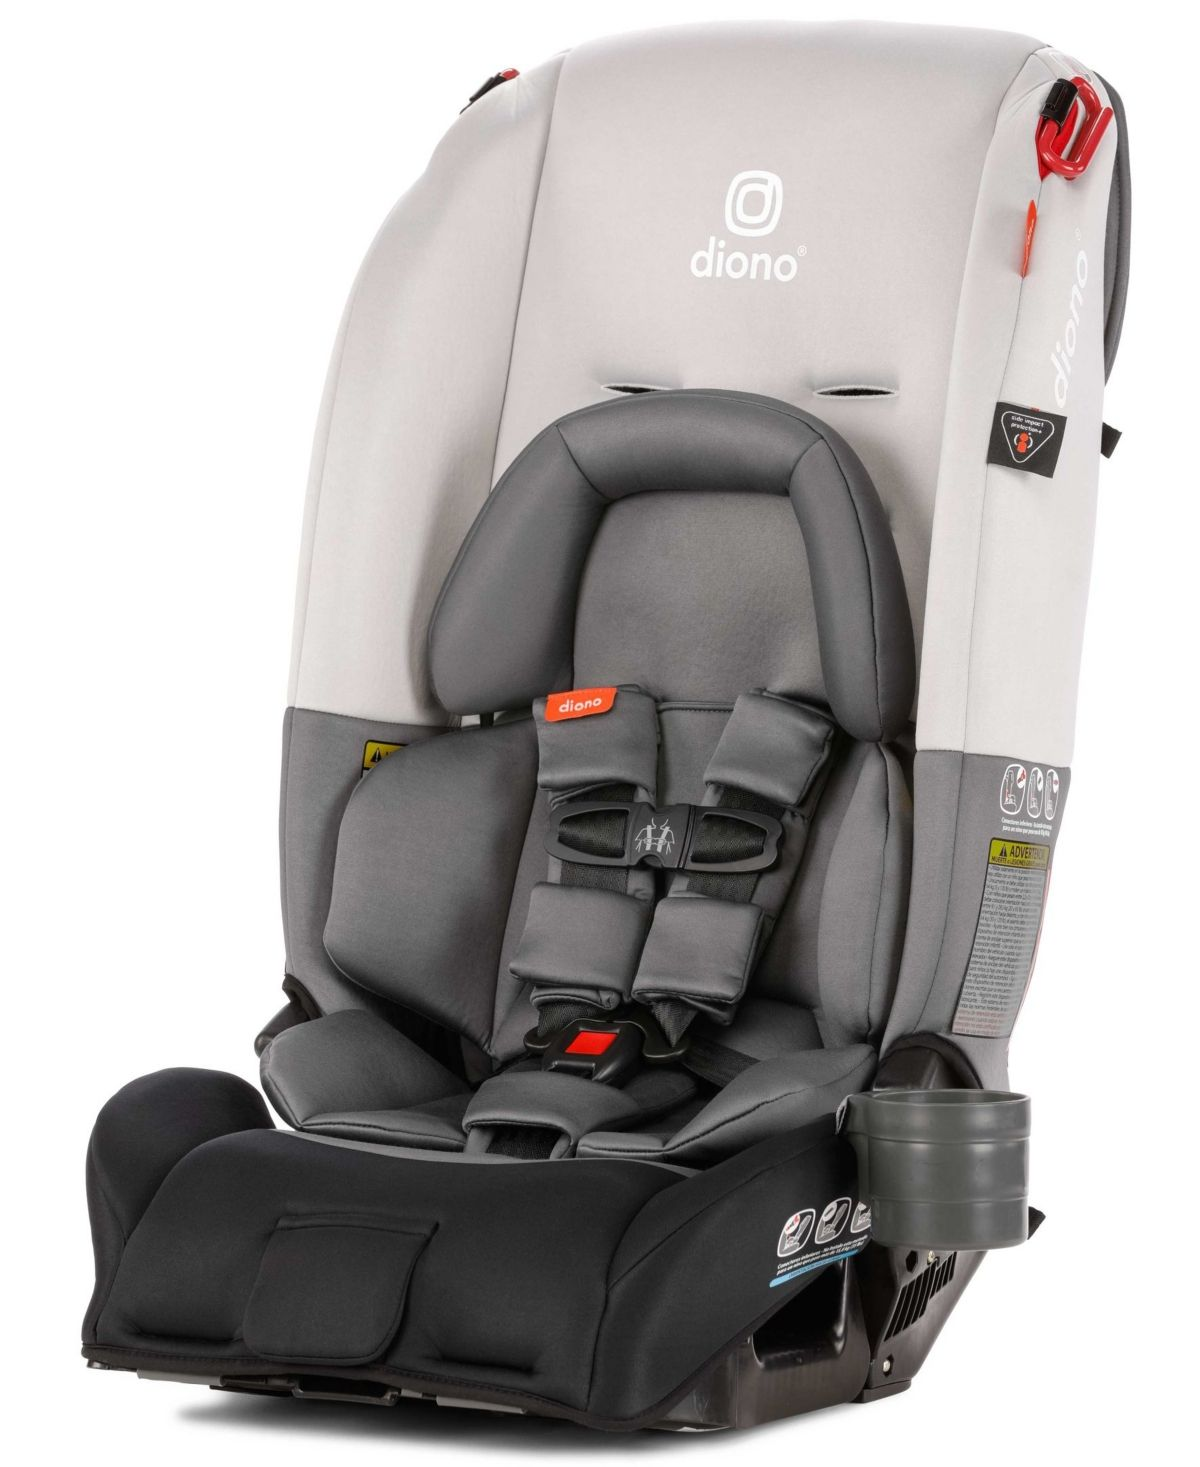 Diono Radian 3 Rx All In One Convertible Car Seat And Booster Reviews All Baby Gear Kids Macy S In 2020 Baby Car Seats Car Seats Booster Car Seat